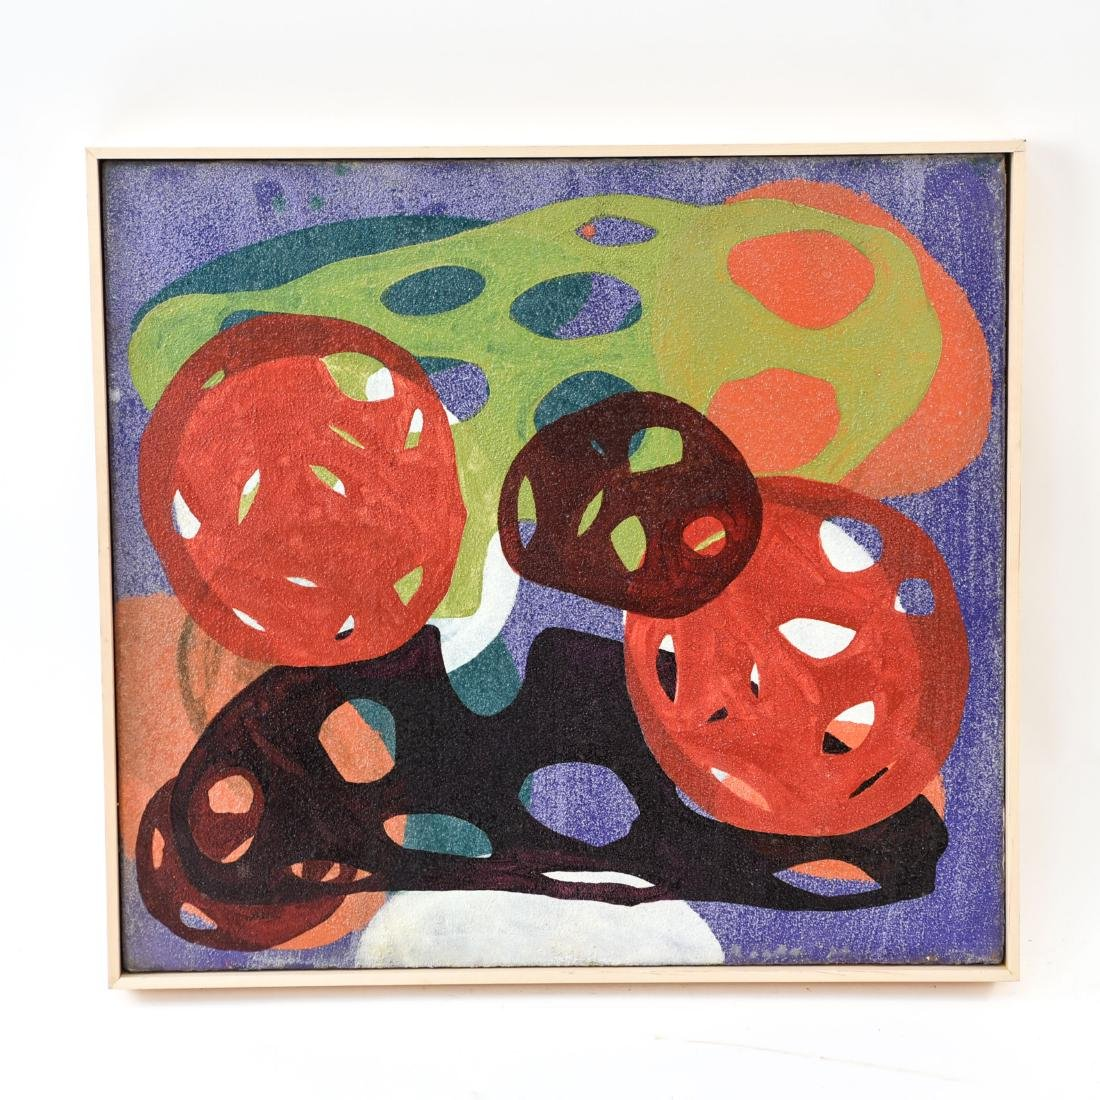 BIOMORPHIC ABSTRACT OIL ON CANVAS